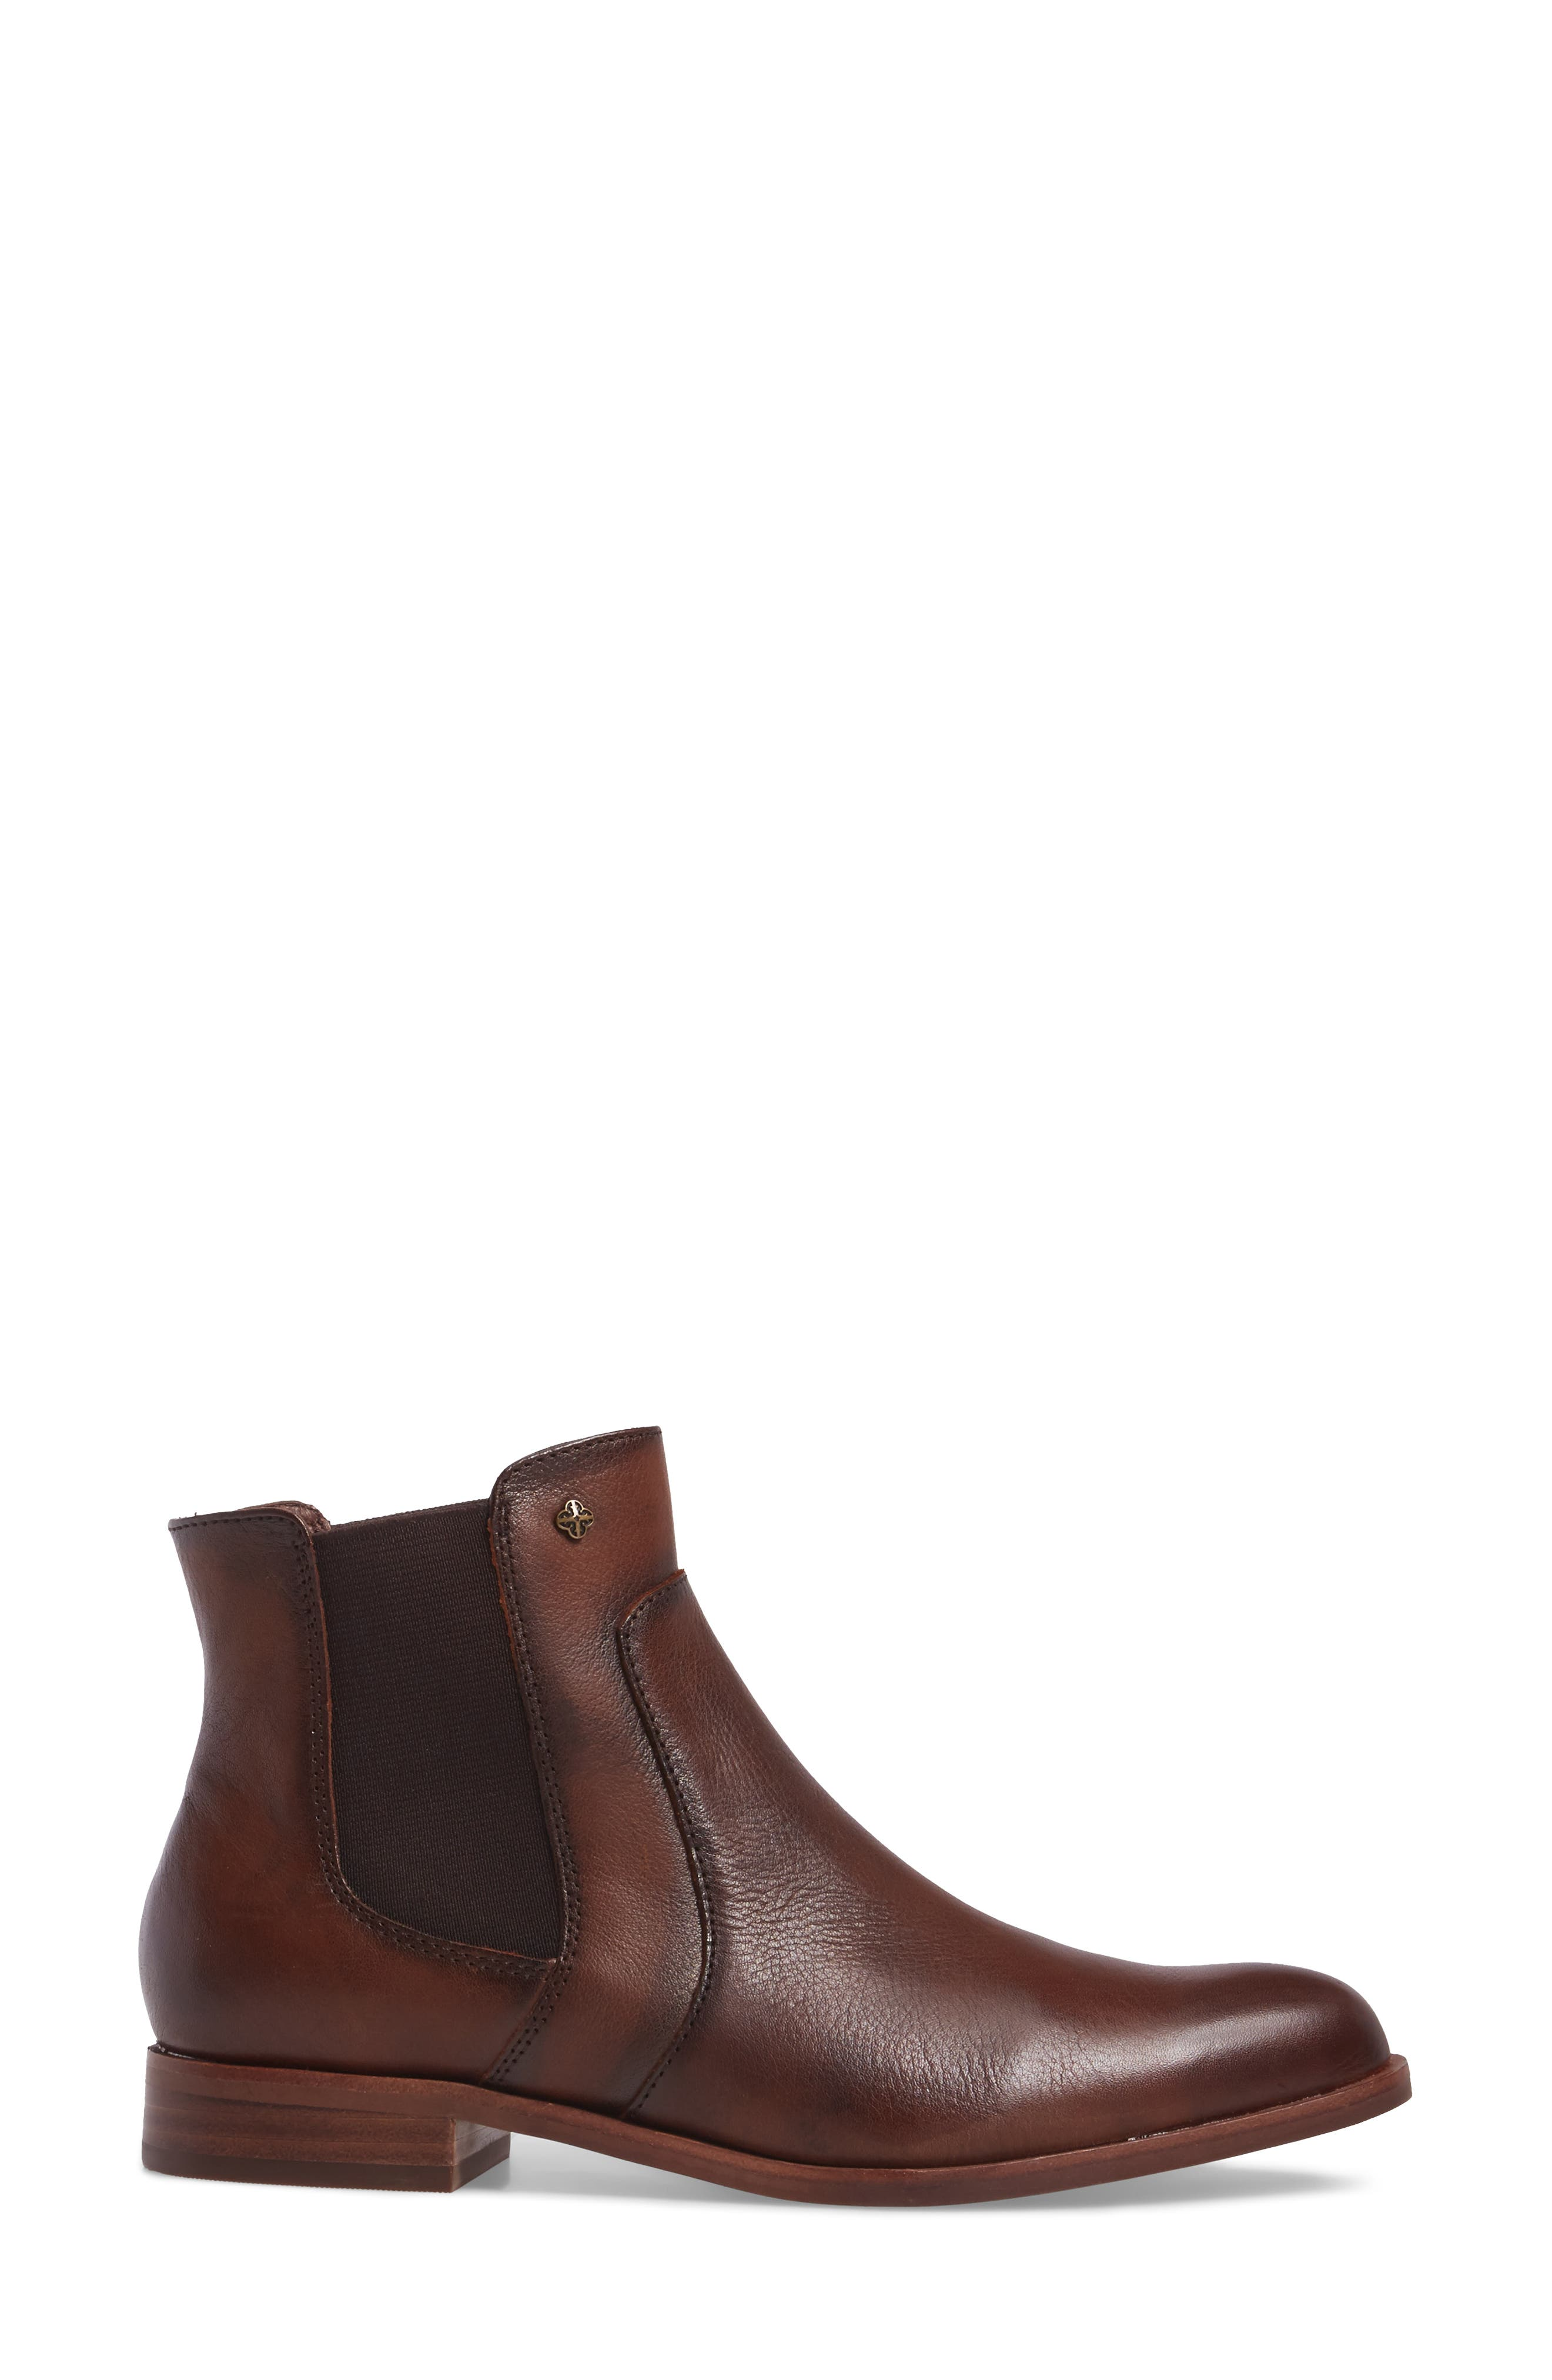 Mora Bootie,                             Alternate thumbnail 3, color,                             Whiskey Leather